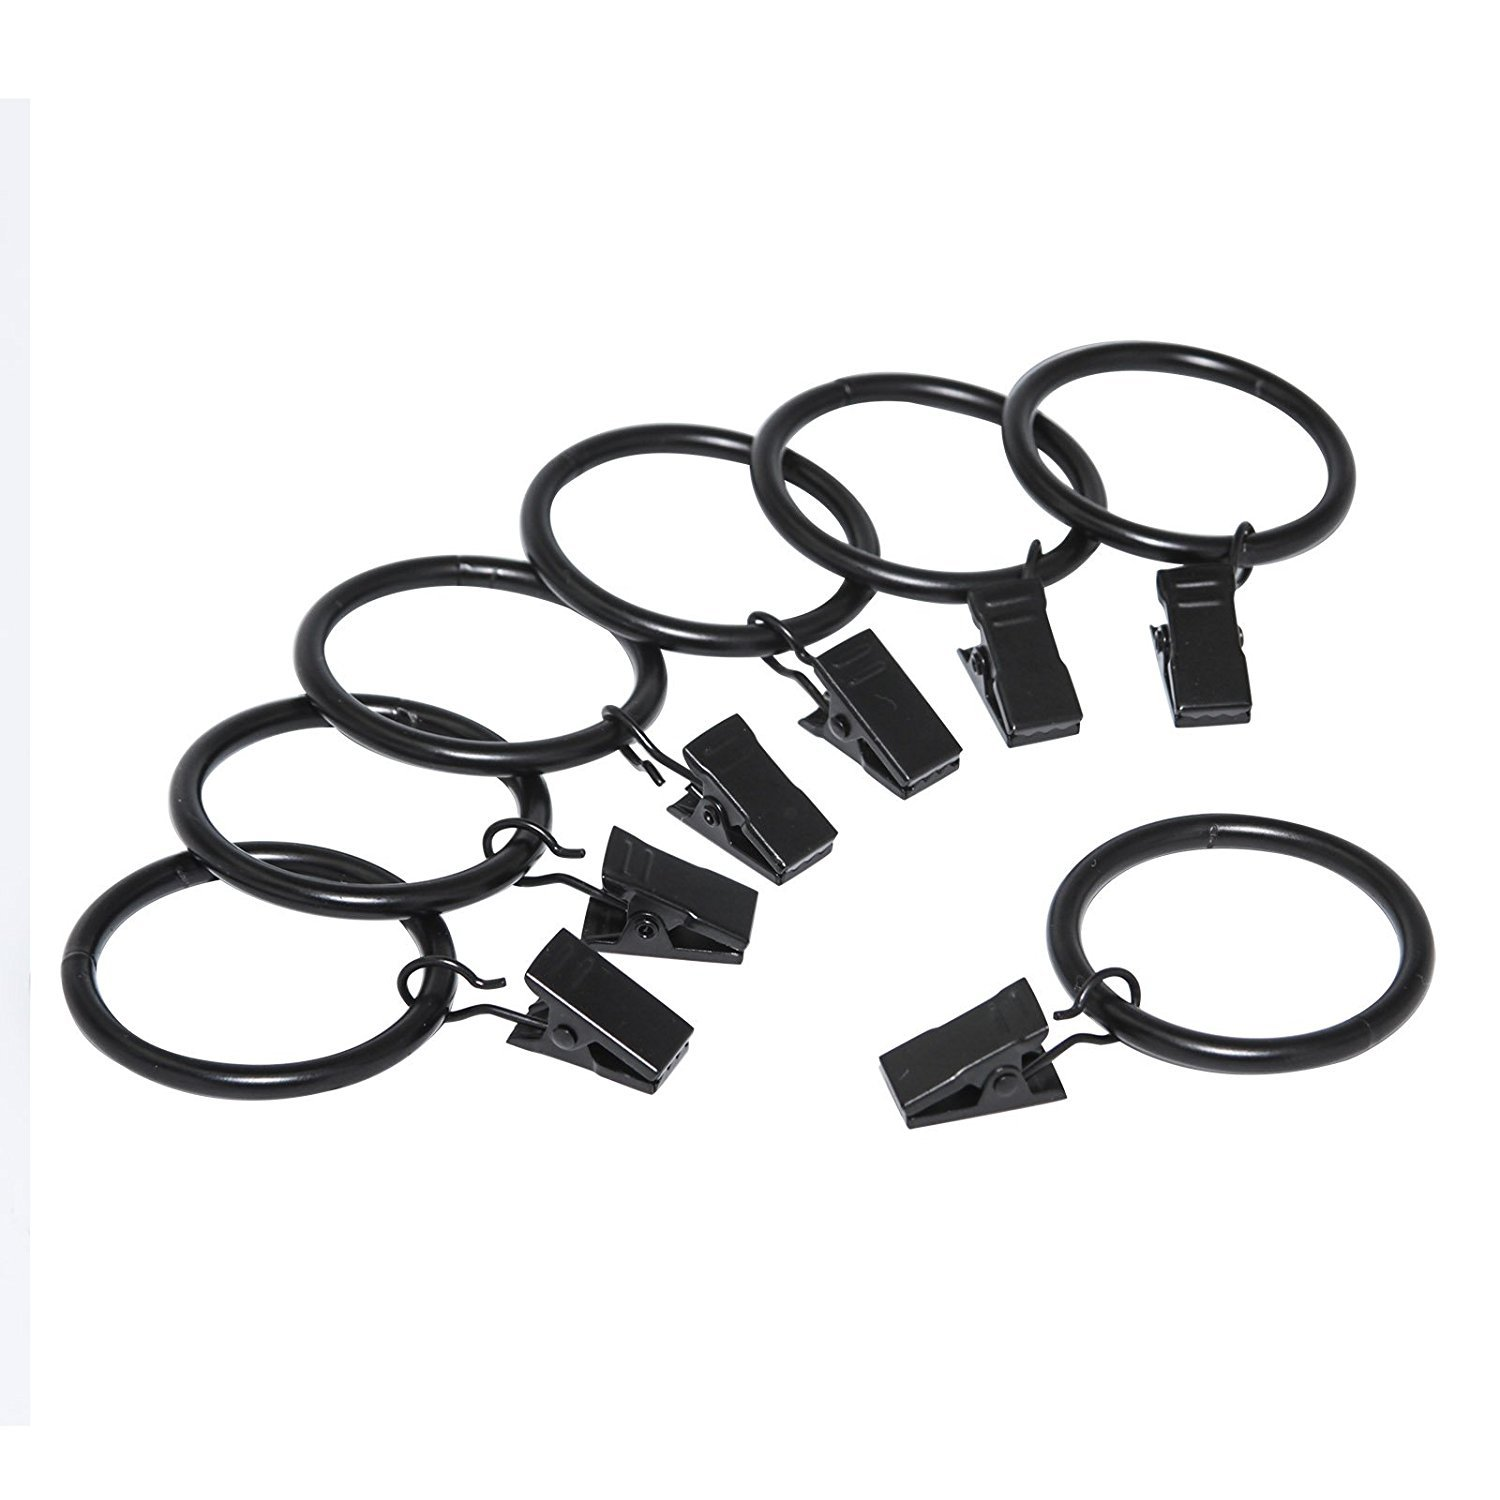 Curtain expert 30 pcs Window Curtain Rings Drapery with Clips ,Black Electroplate Surface and Premium Iron Metal Material l(1.5'' Interior Diameter Black)